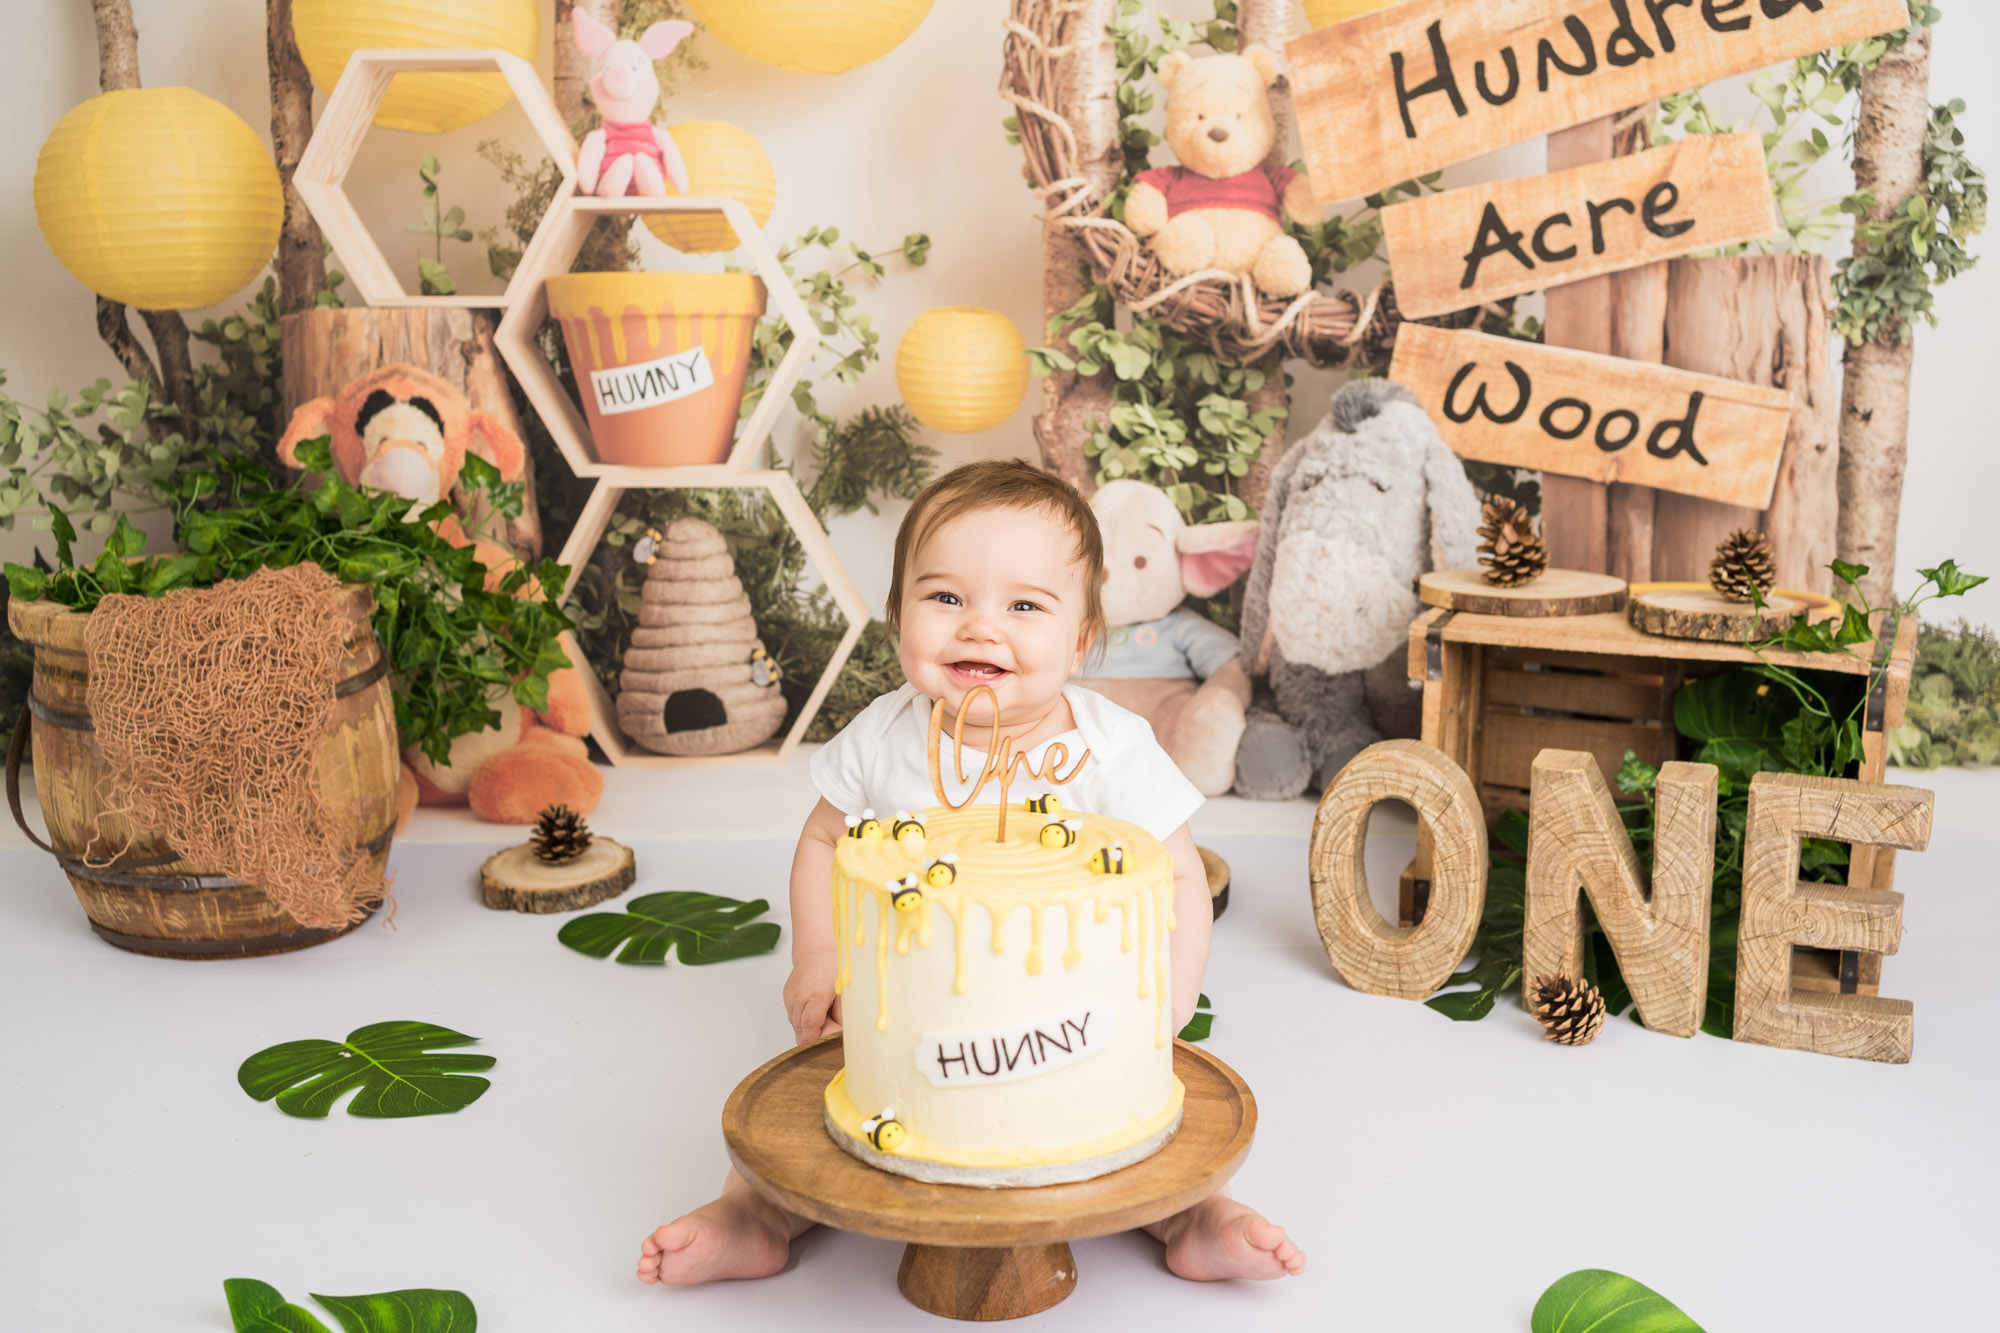 1st Birthday celebration for little baby in Winnie the Pooh setting